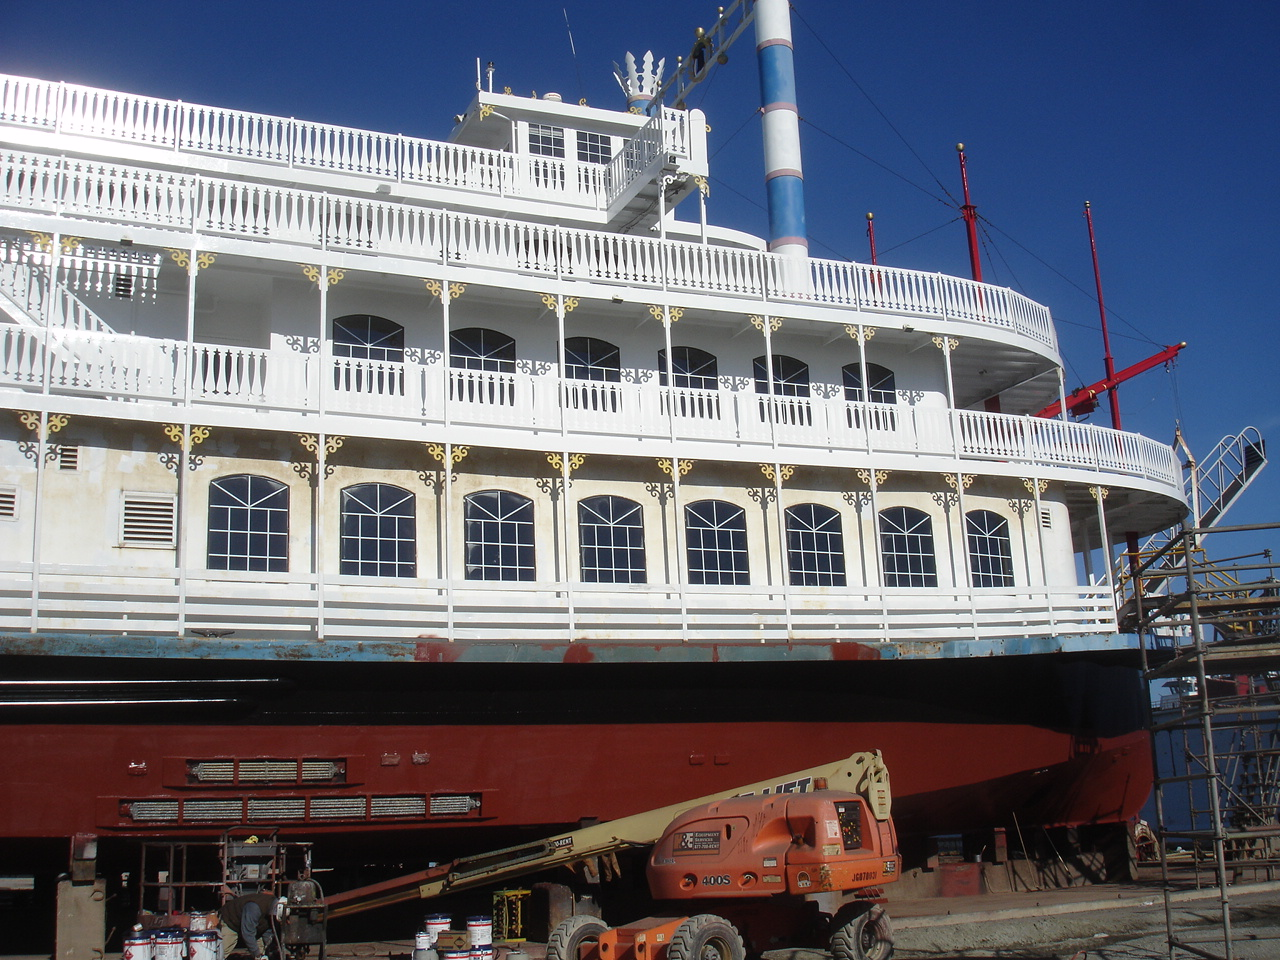 MV Liberty Belle